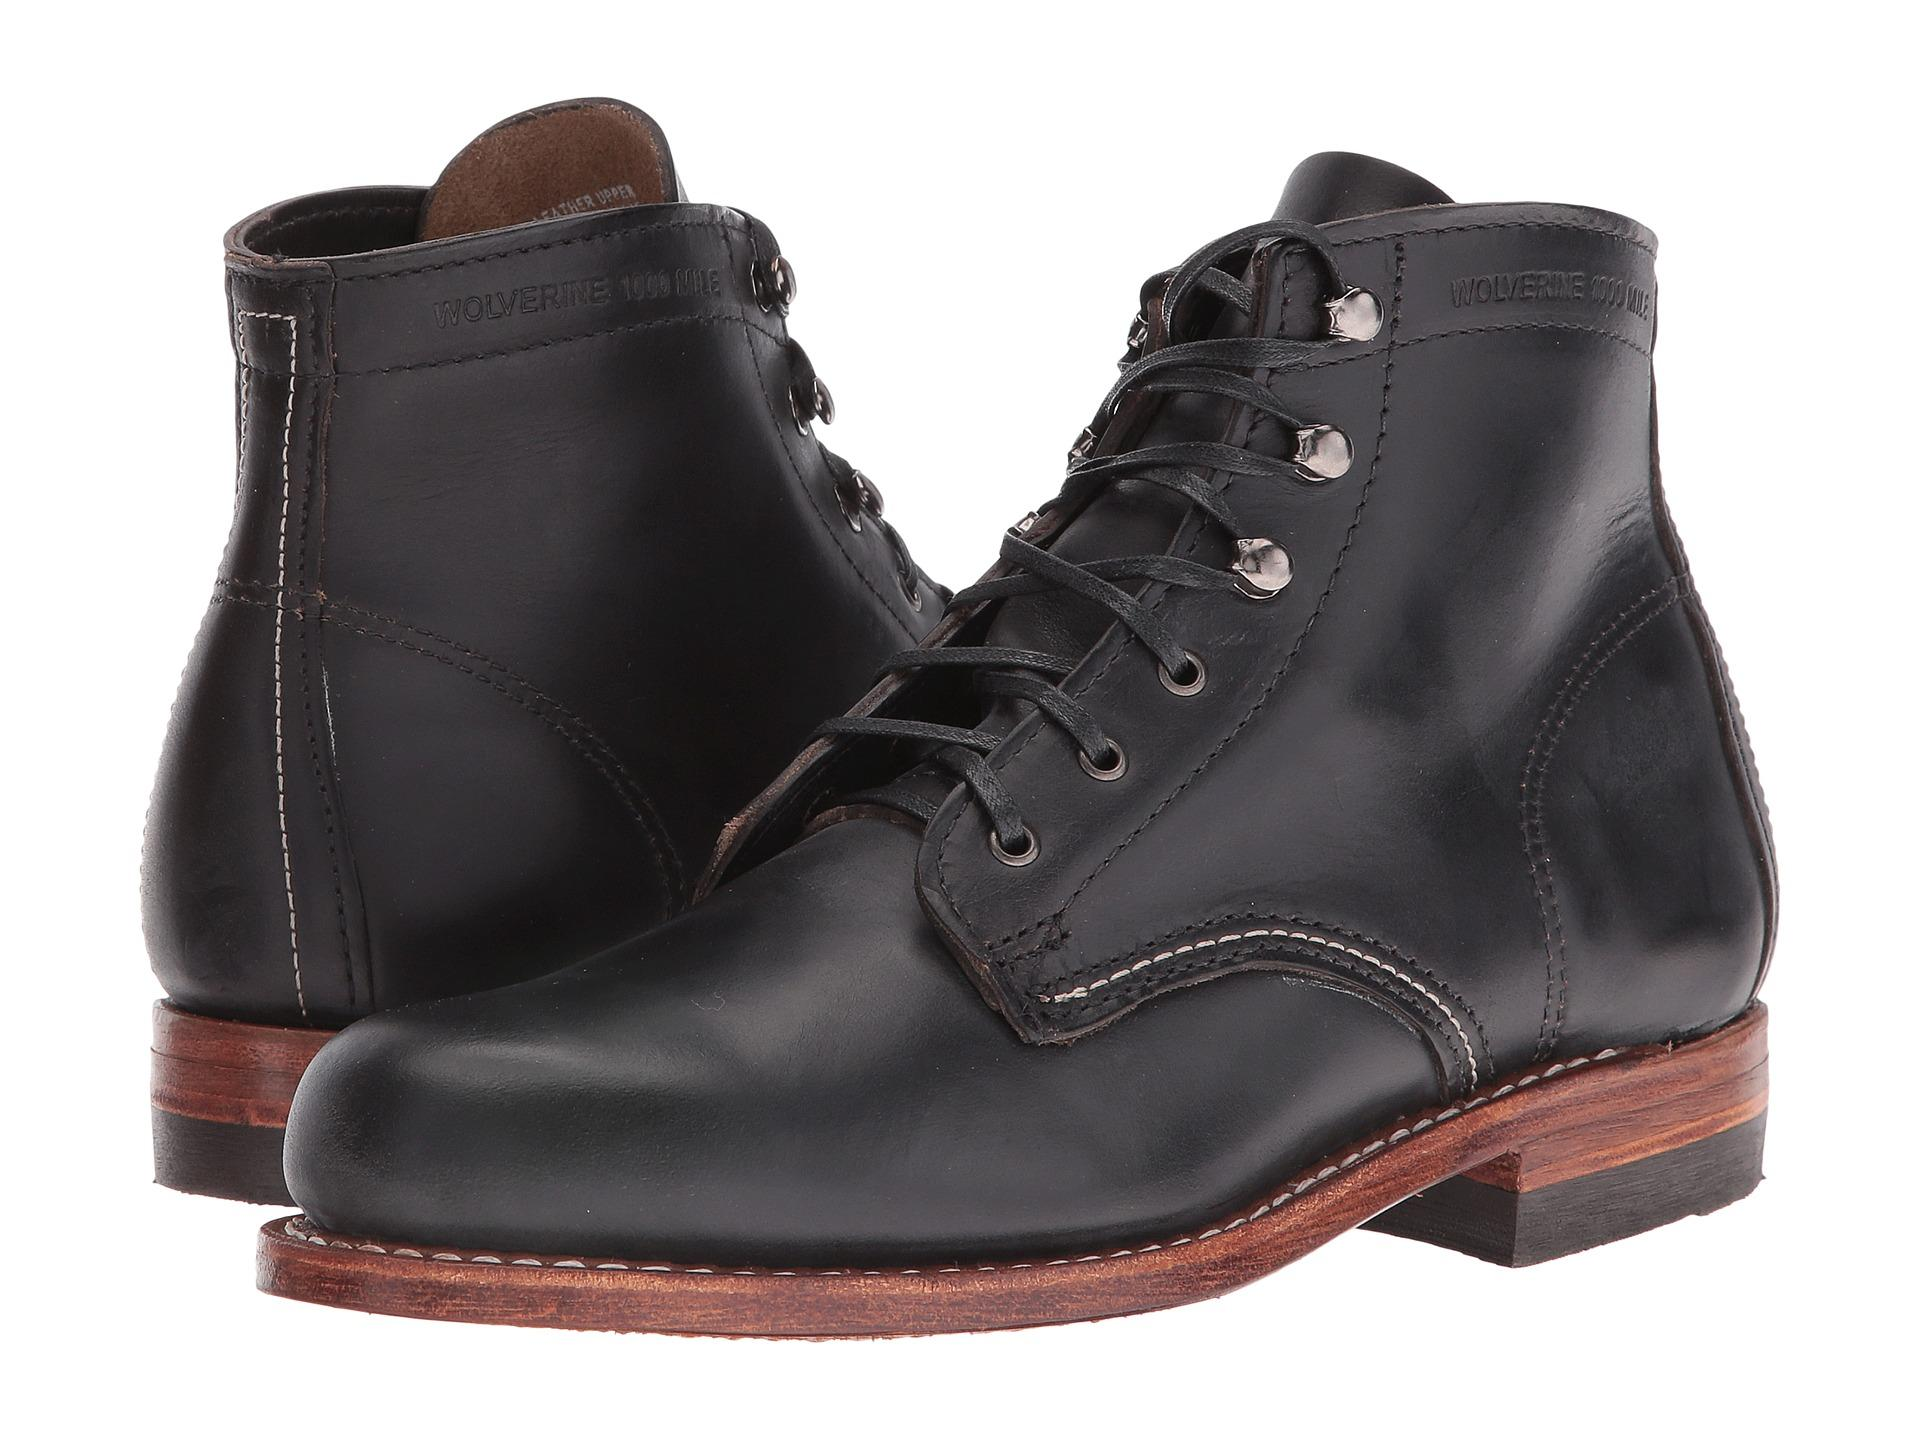 Wolverine boots are available in a wide range of stylish designs, including classic lace-up and chelsea leather boots, pull on boots, desert and hiking boots, rubber and winter boots, and sturdy Cowboy boots.